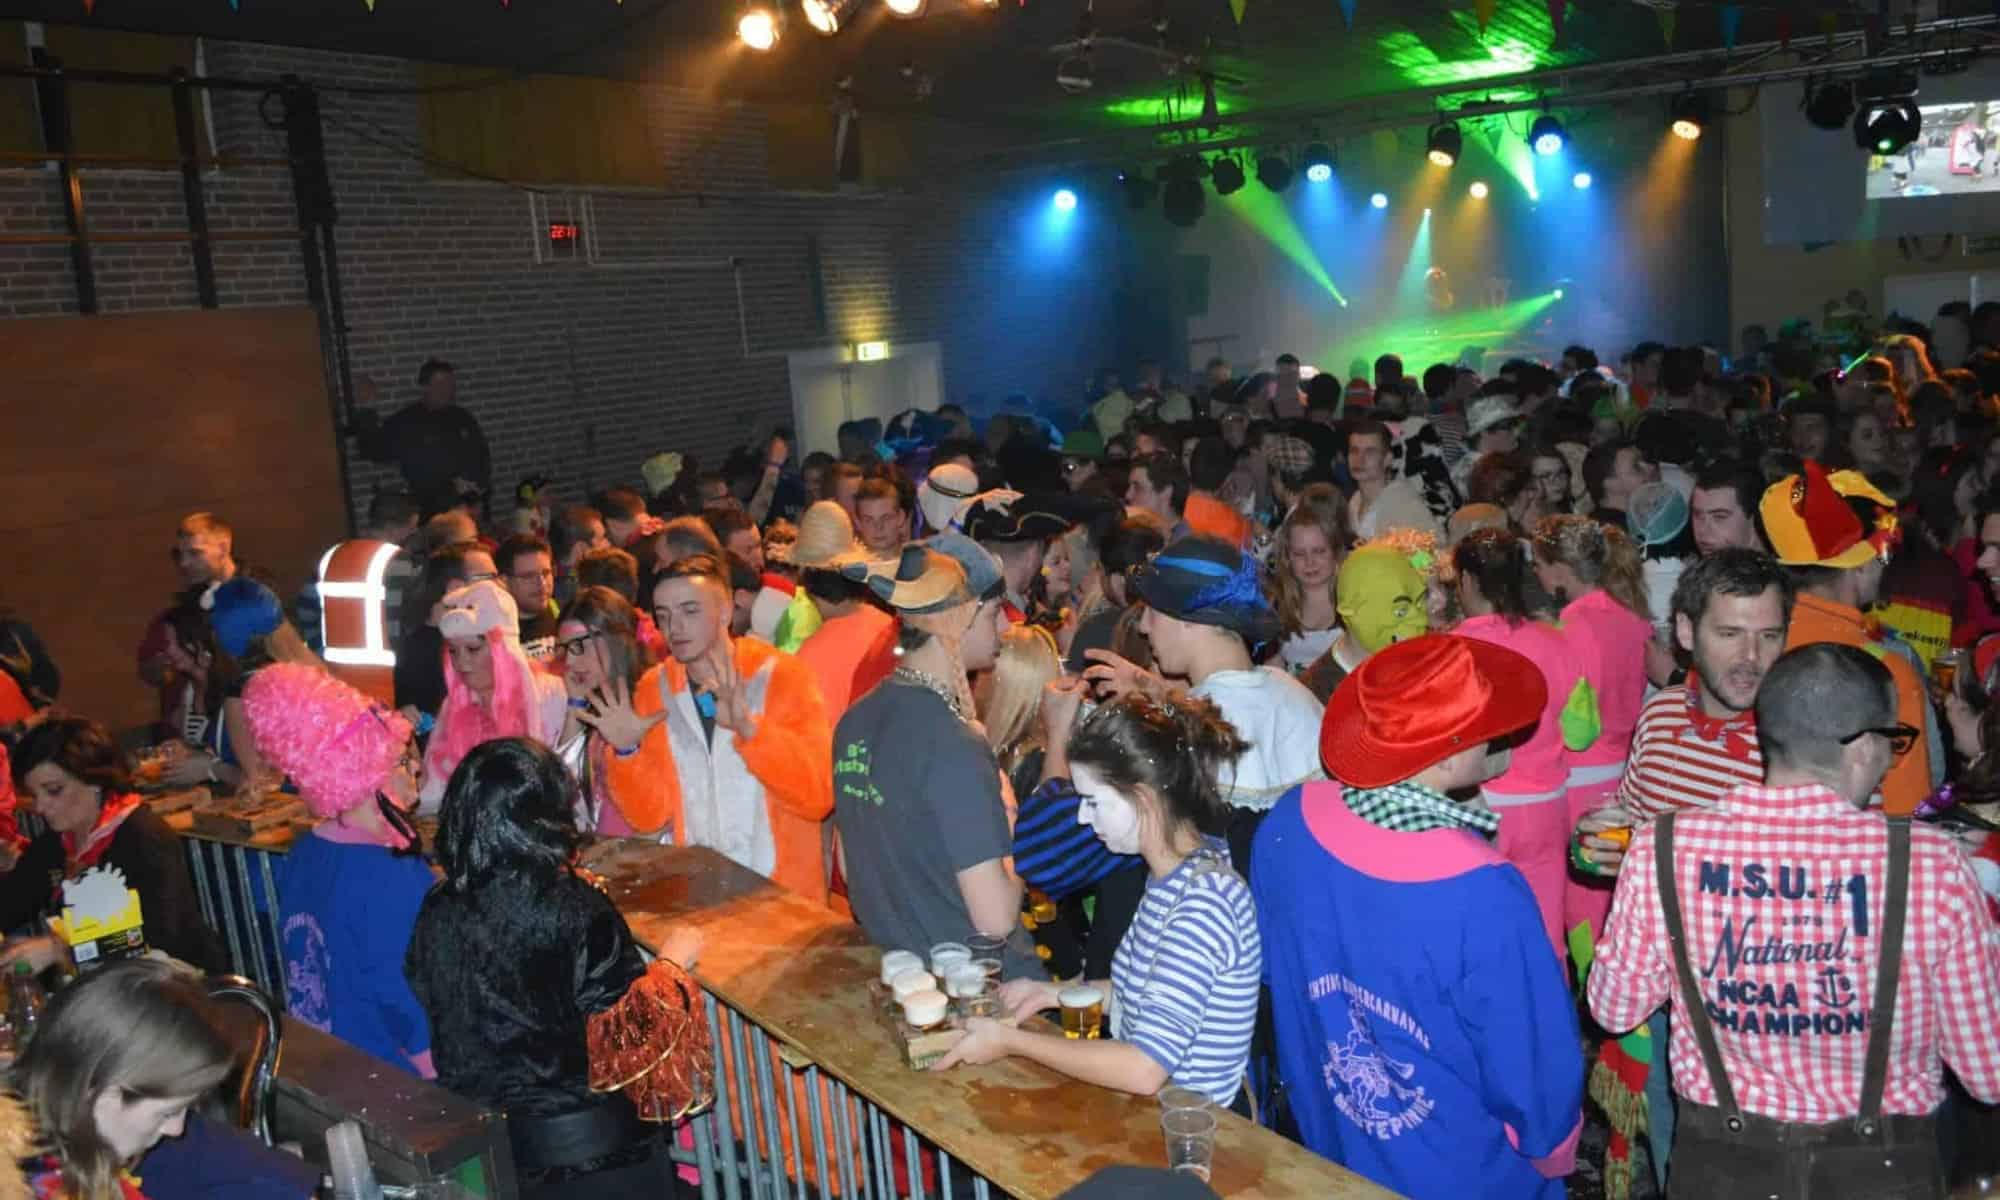 Carnavalsbal Wouwse Plantage Roosendaal, feest